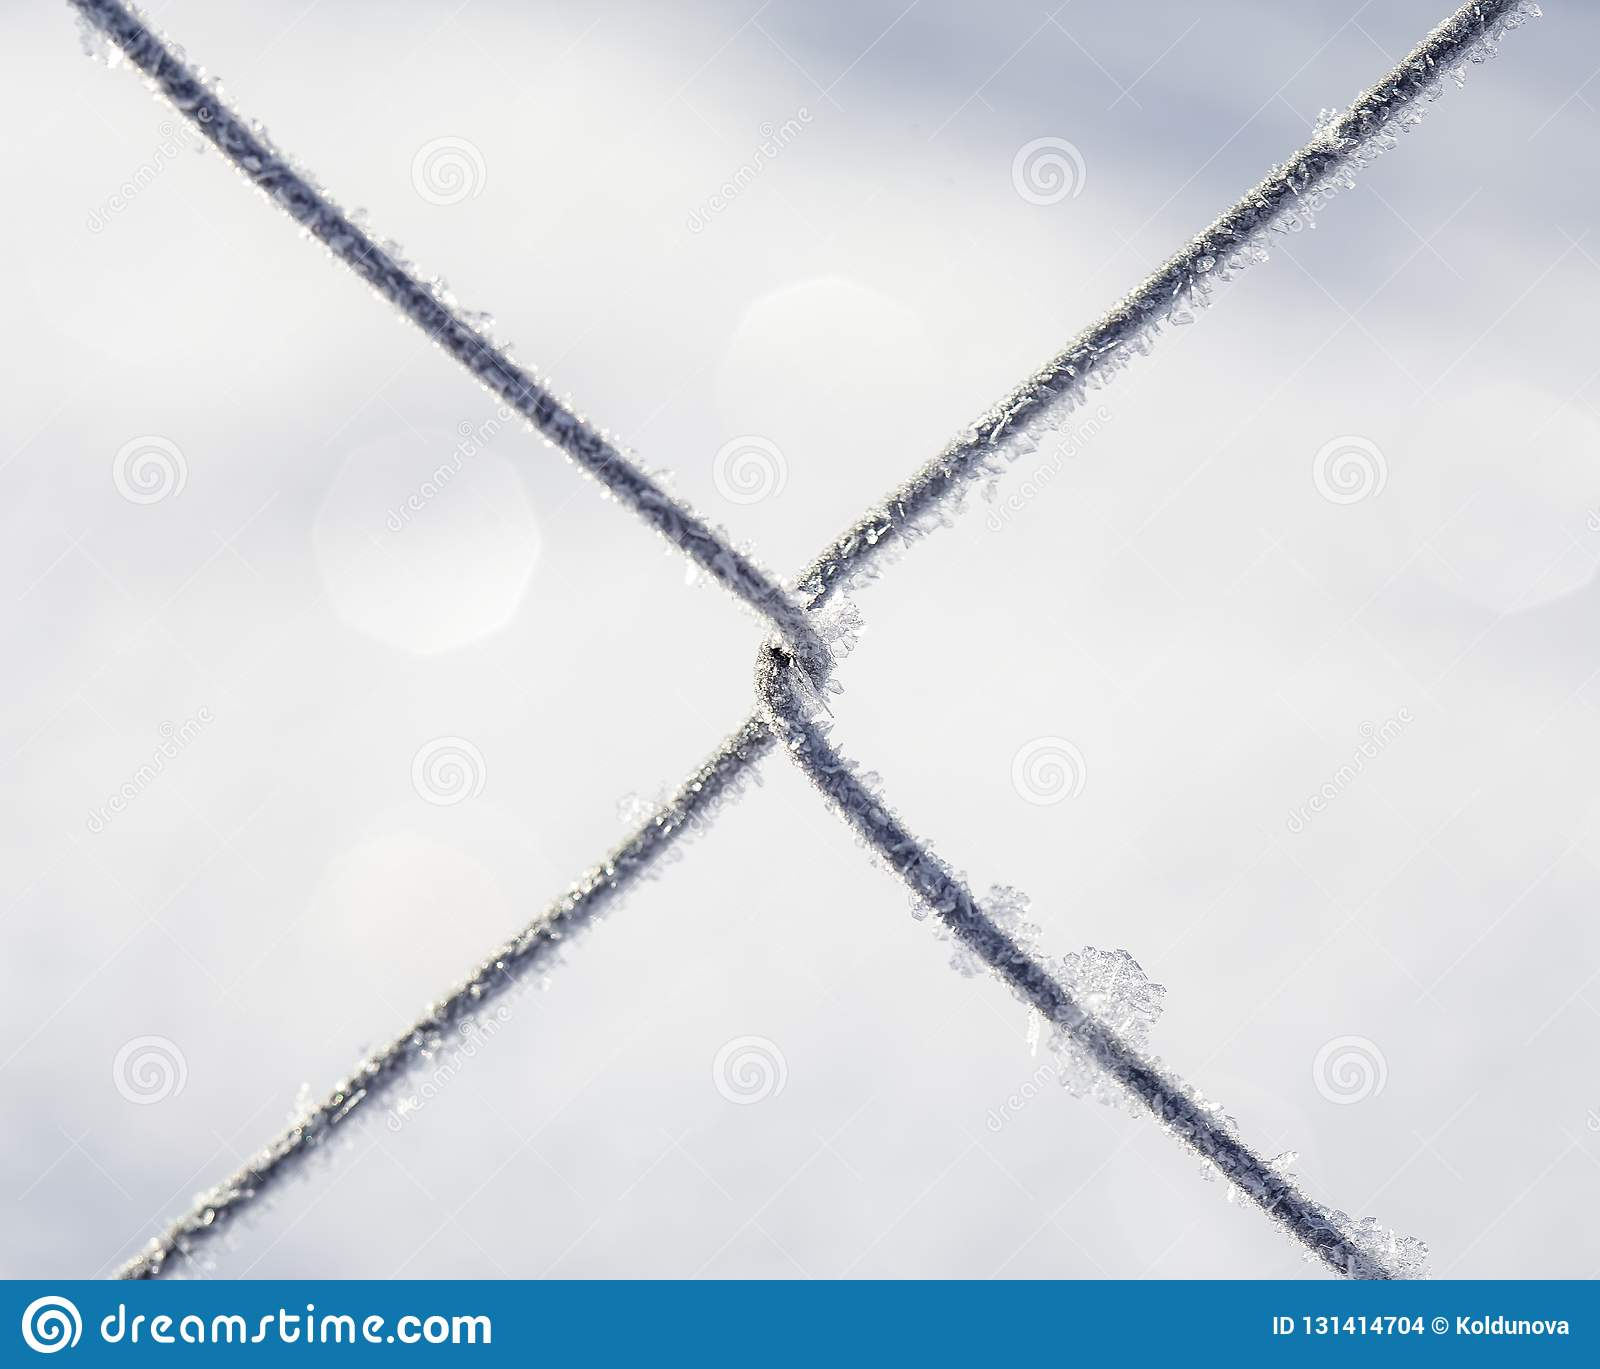 Frozen fence made of metal mesh covered with frost crystals, an early sunny cold morning, on a blurred background.